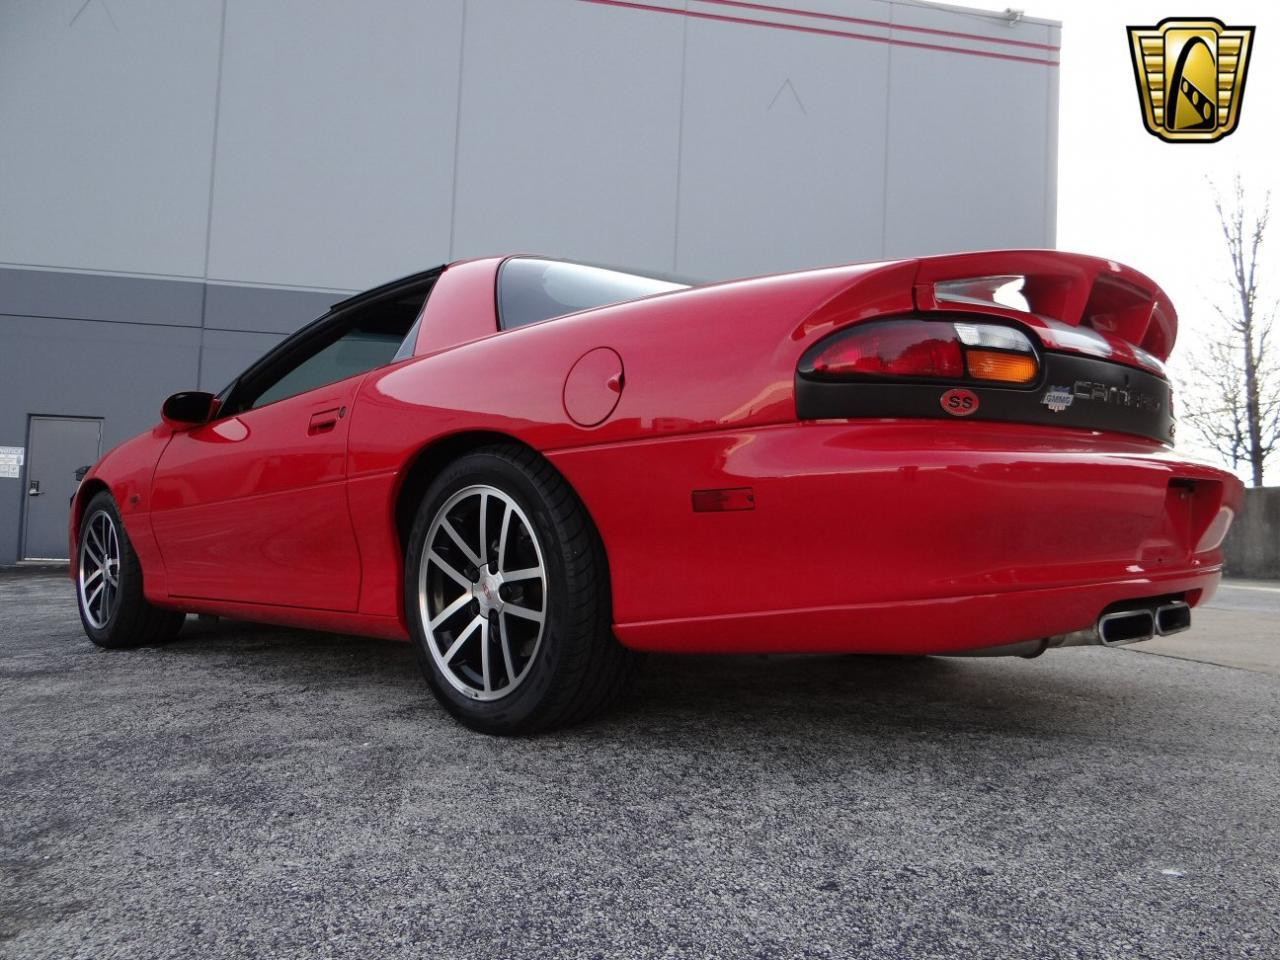 Large Picture of 2002 Chevrolet Camaro located in Illinois Offered by Gateway Classic Cars - Chicago - L44H